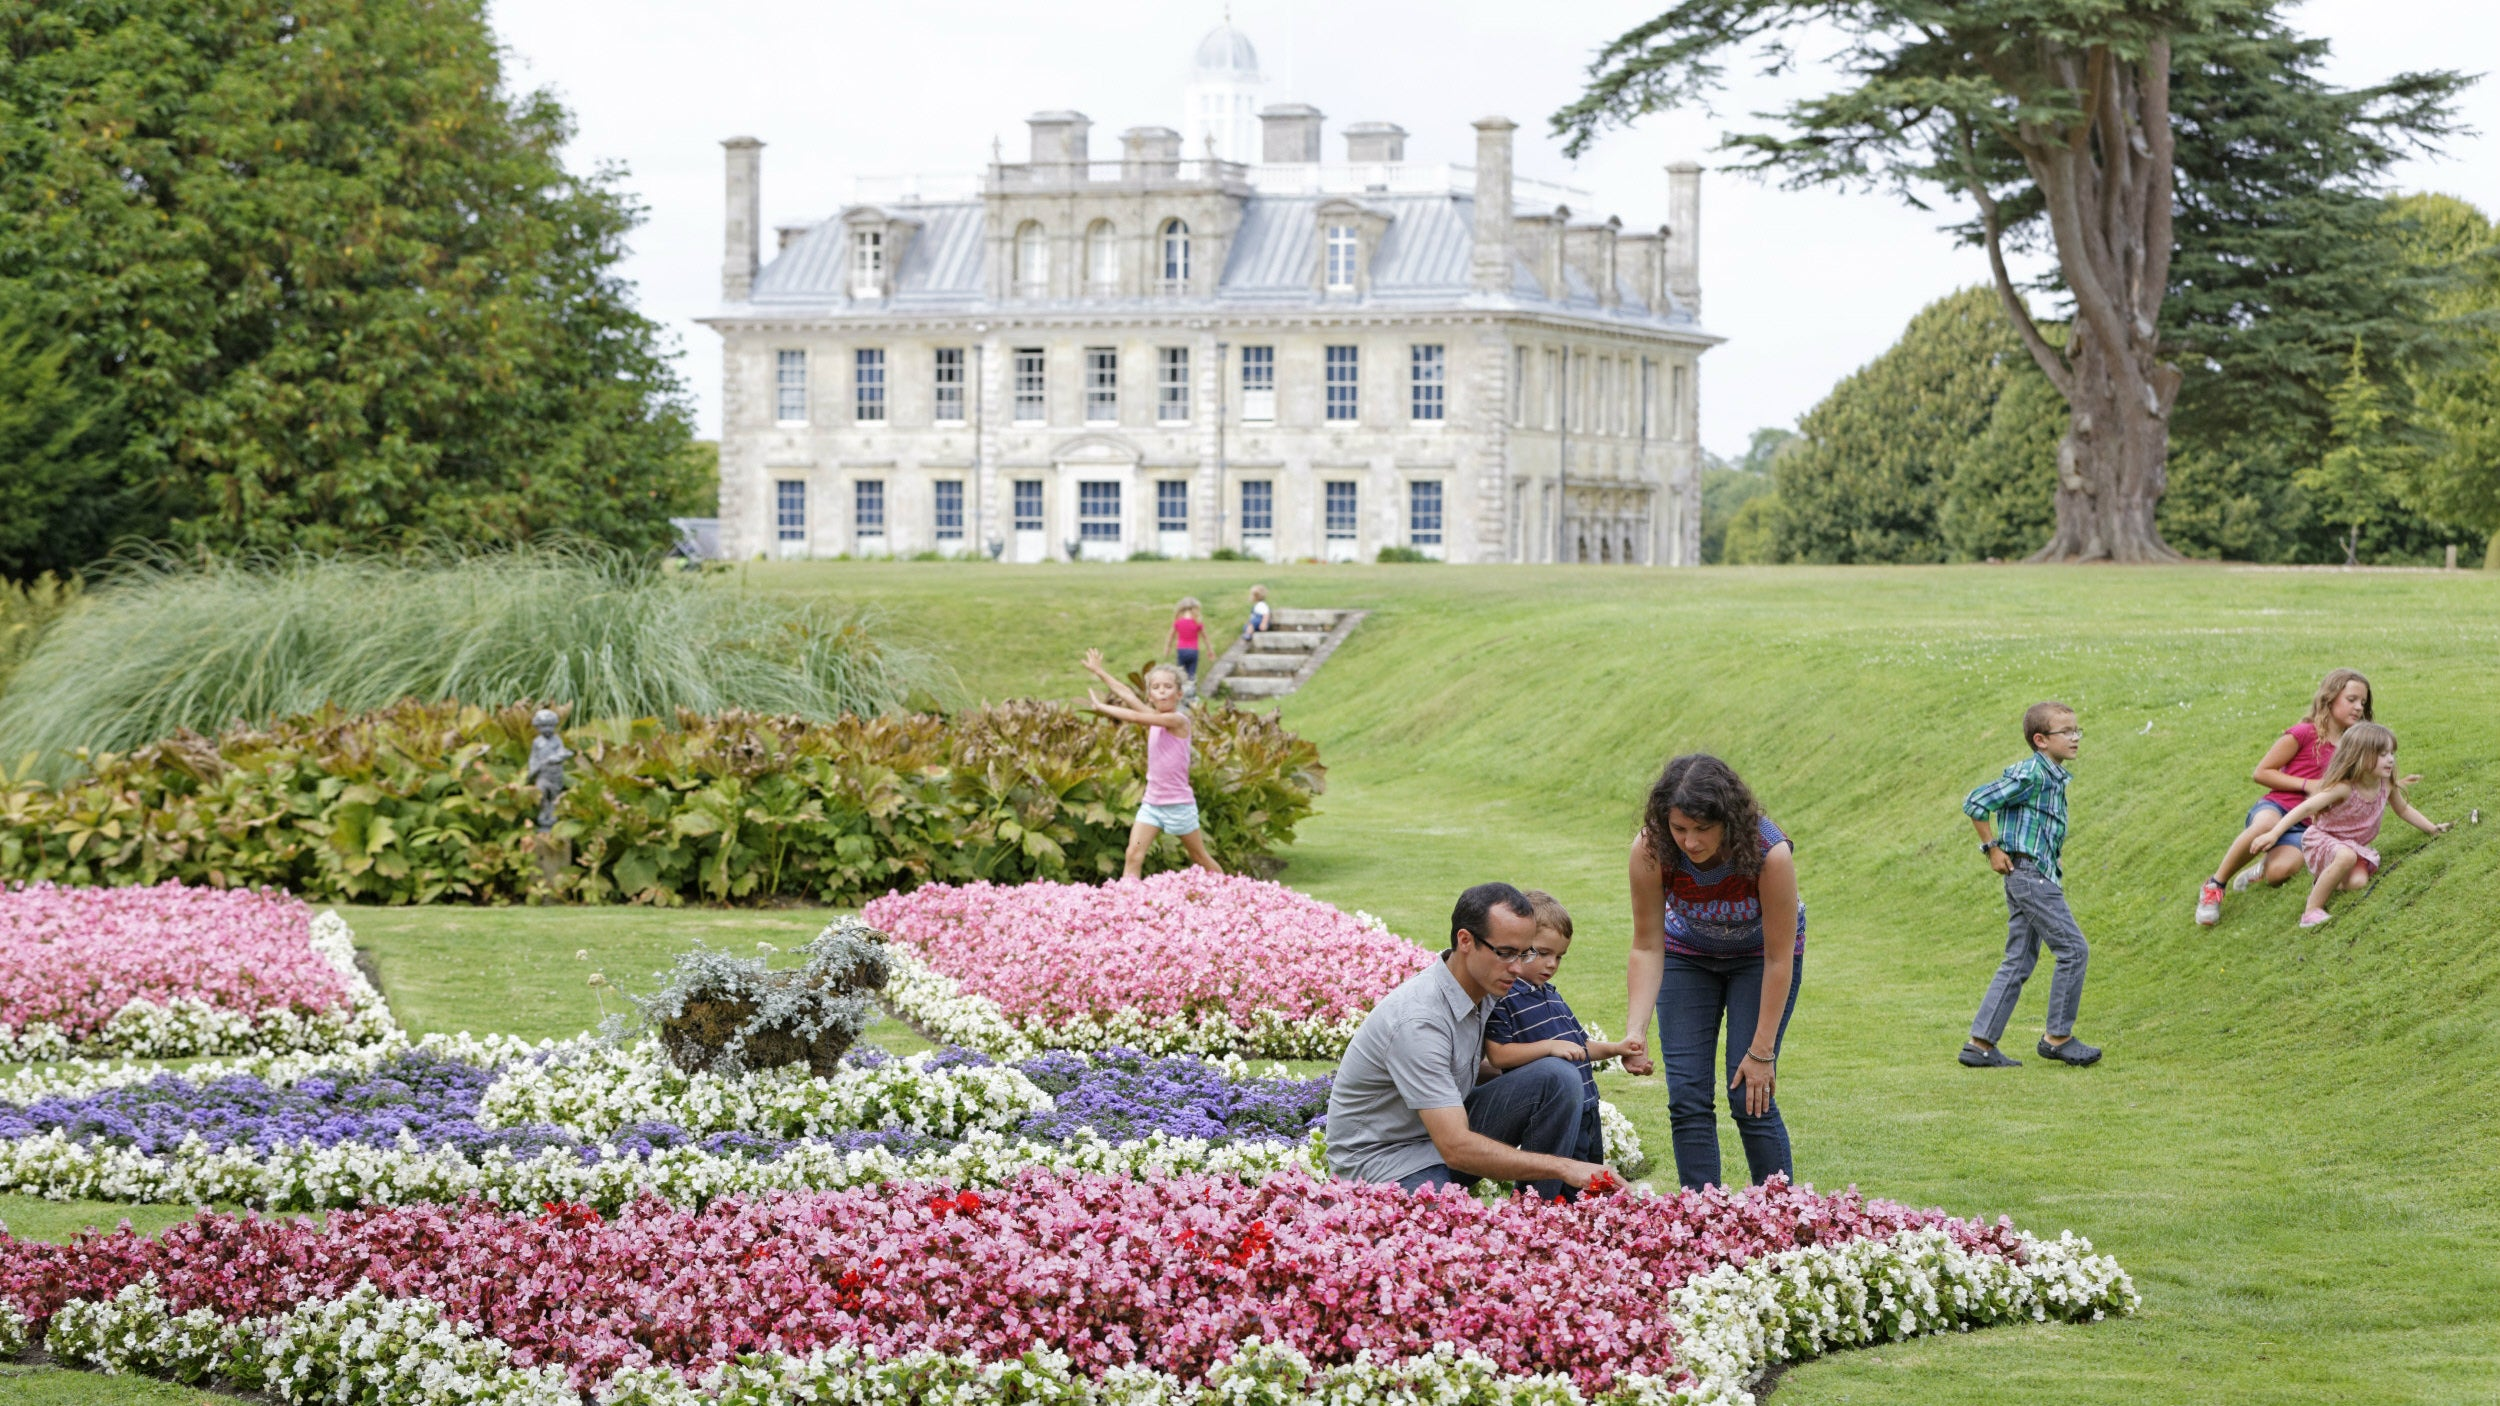 Kingston Lacy in Dorset